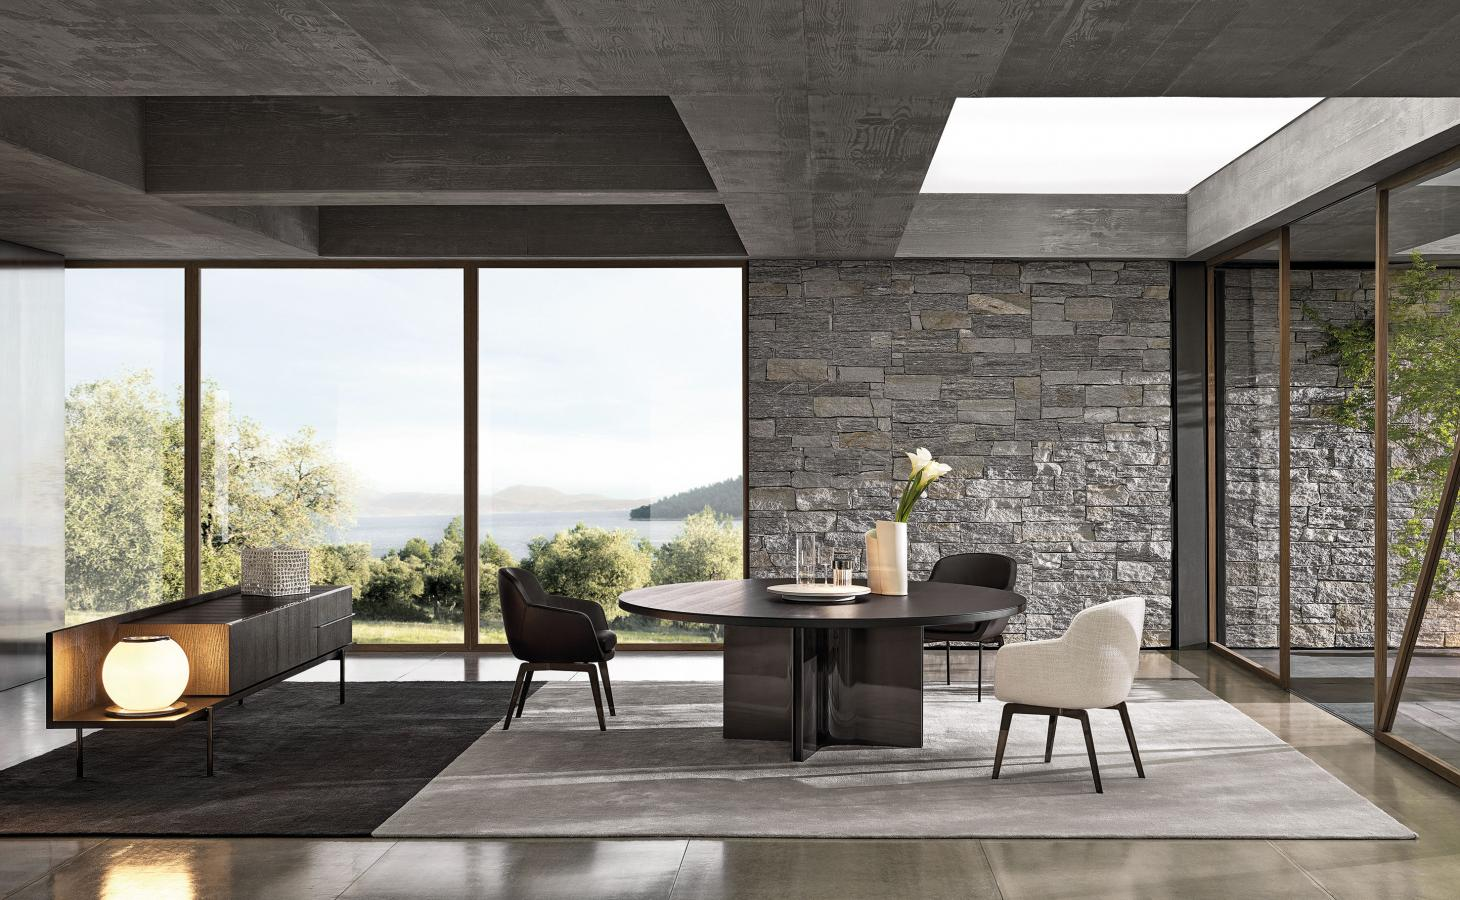 Marvin table by Rodolfo Dordoni for Minotti in a dining room setting